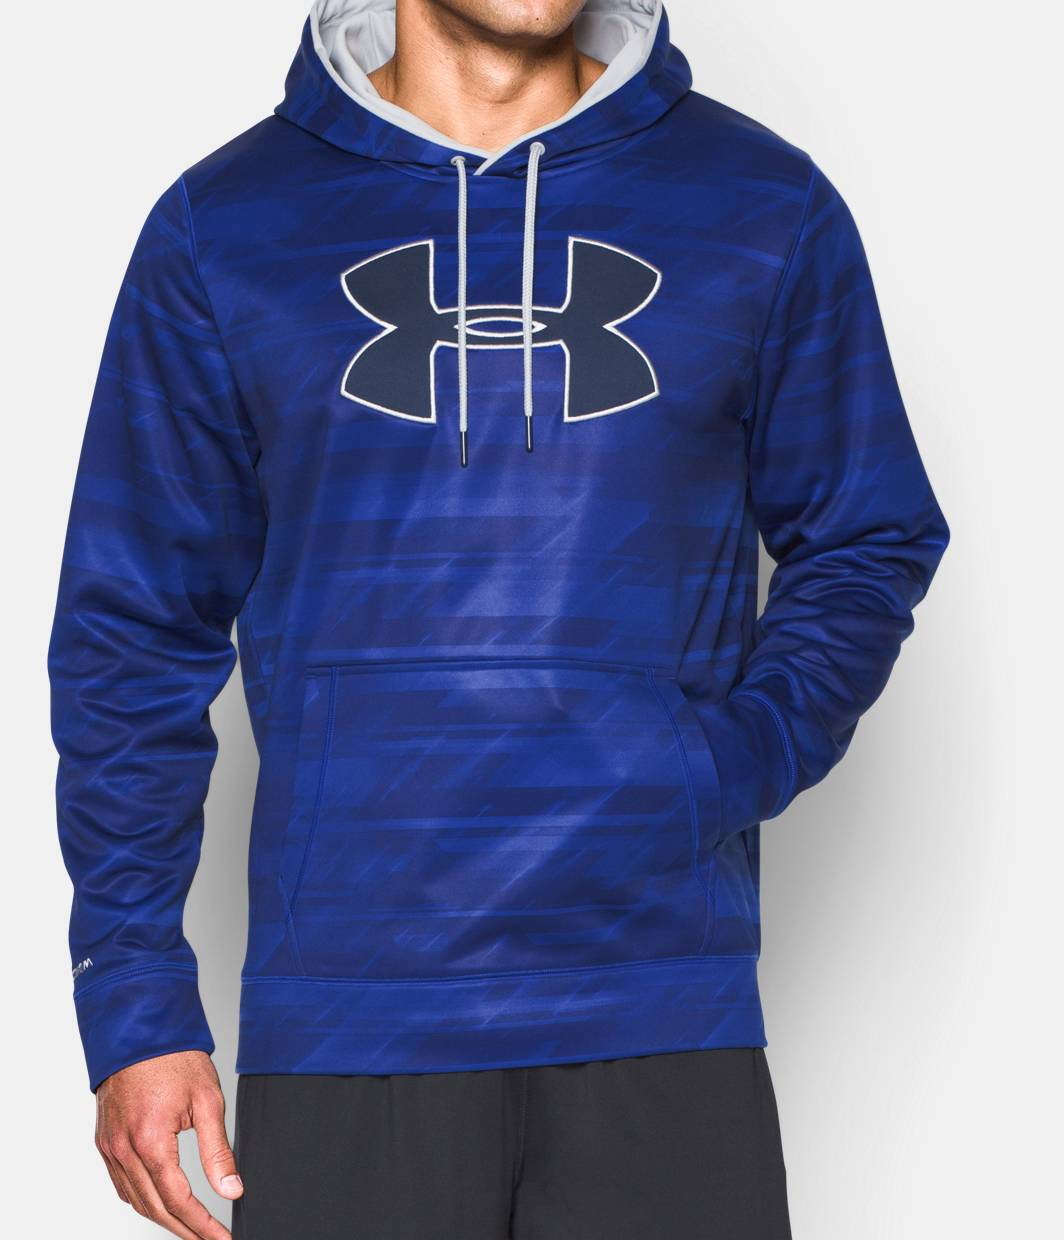 Enjoy free shipping and easy returns every day at Kohl's. Find great deals on Mens Big & Tall Hoodies & Sweatshirts Tops at Kohl's today!